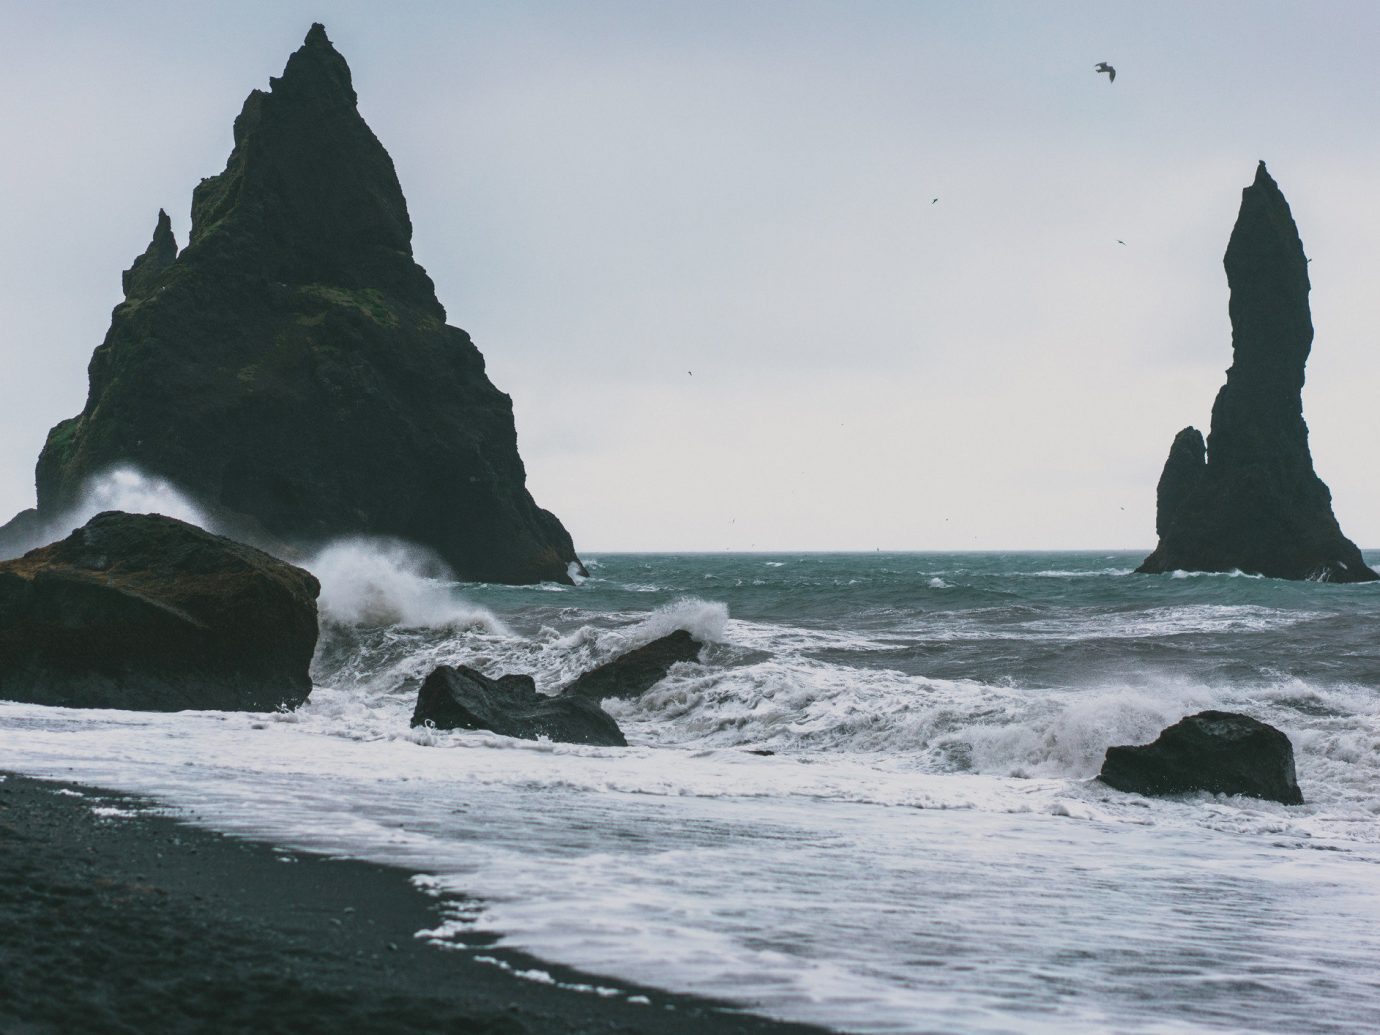 Iceland Outdoors + Adventure outdoor water sky Sea Coast coastal and oceanic landforms Ocean Nature wave headland shore promontory rock mountain wind wave stack rocky cape terrain cliff islet klippe tide formation